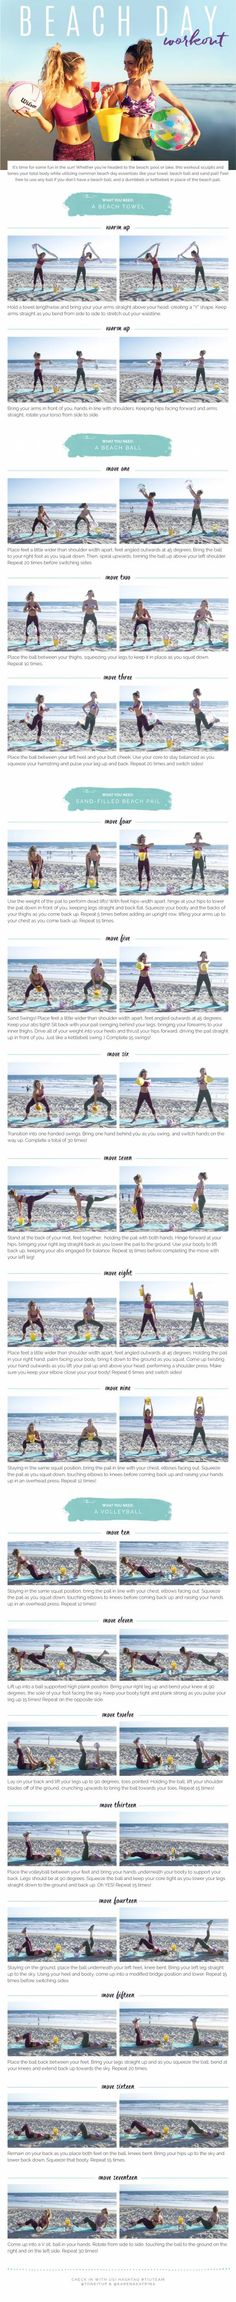 Beach-Day-Workout-Tone-It-Up